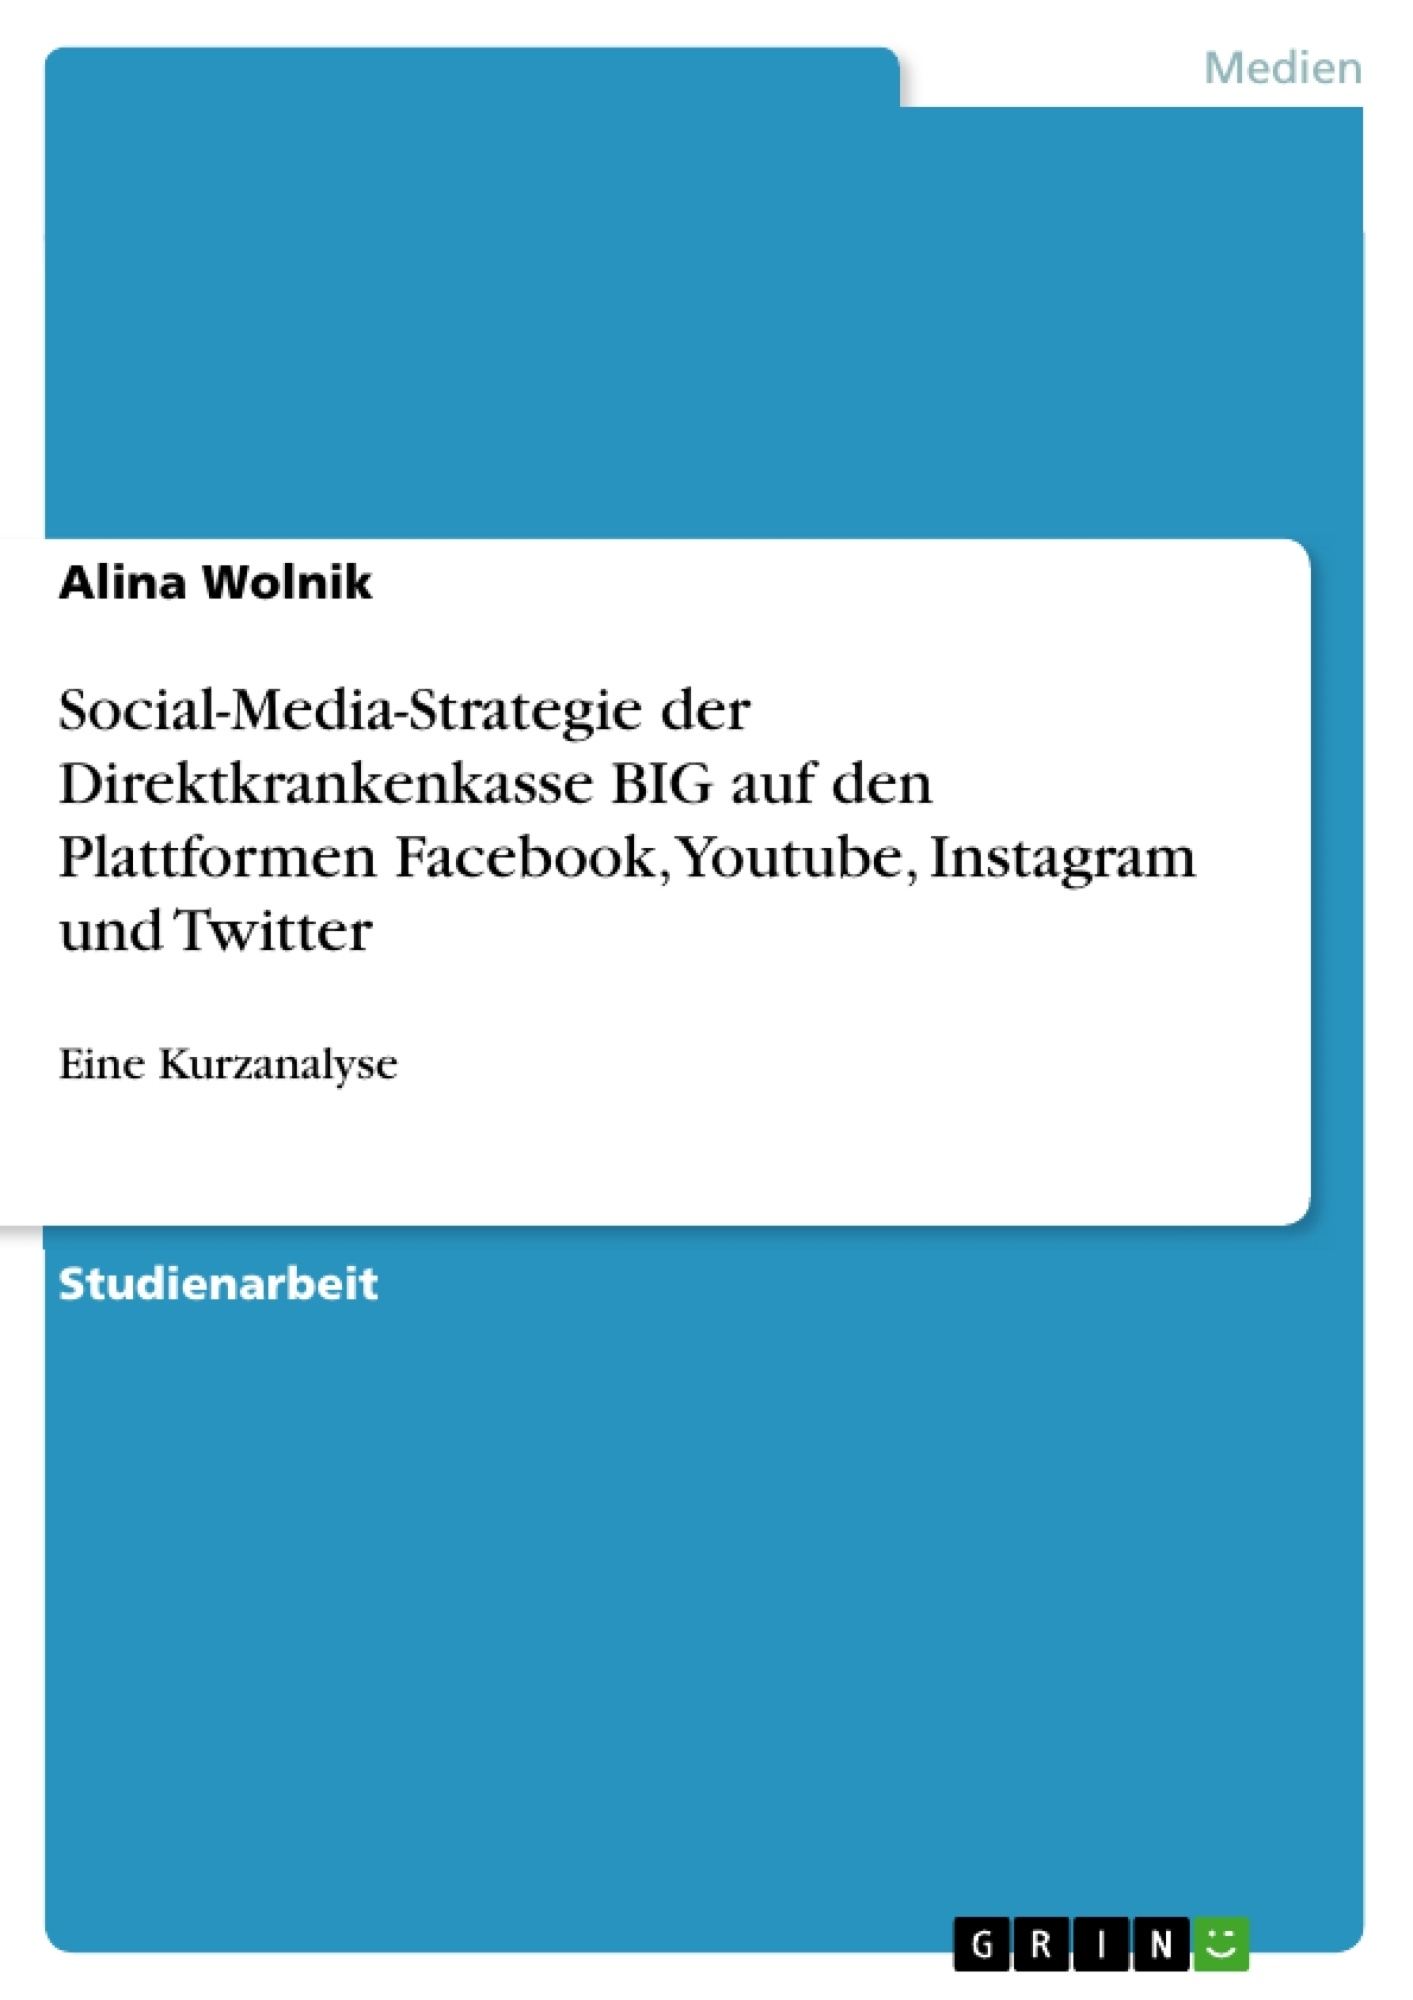 Titel: Social-Media-Strategie der Direktkrankenkasse BIG auf den Plattformen Facebook, Youtube, Instagram und Twitter